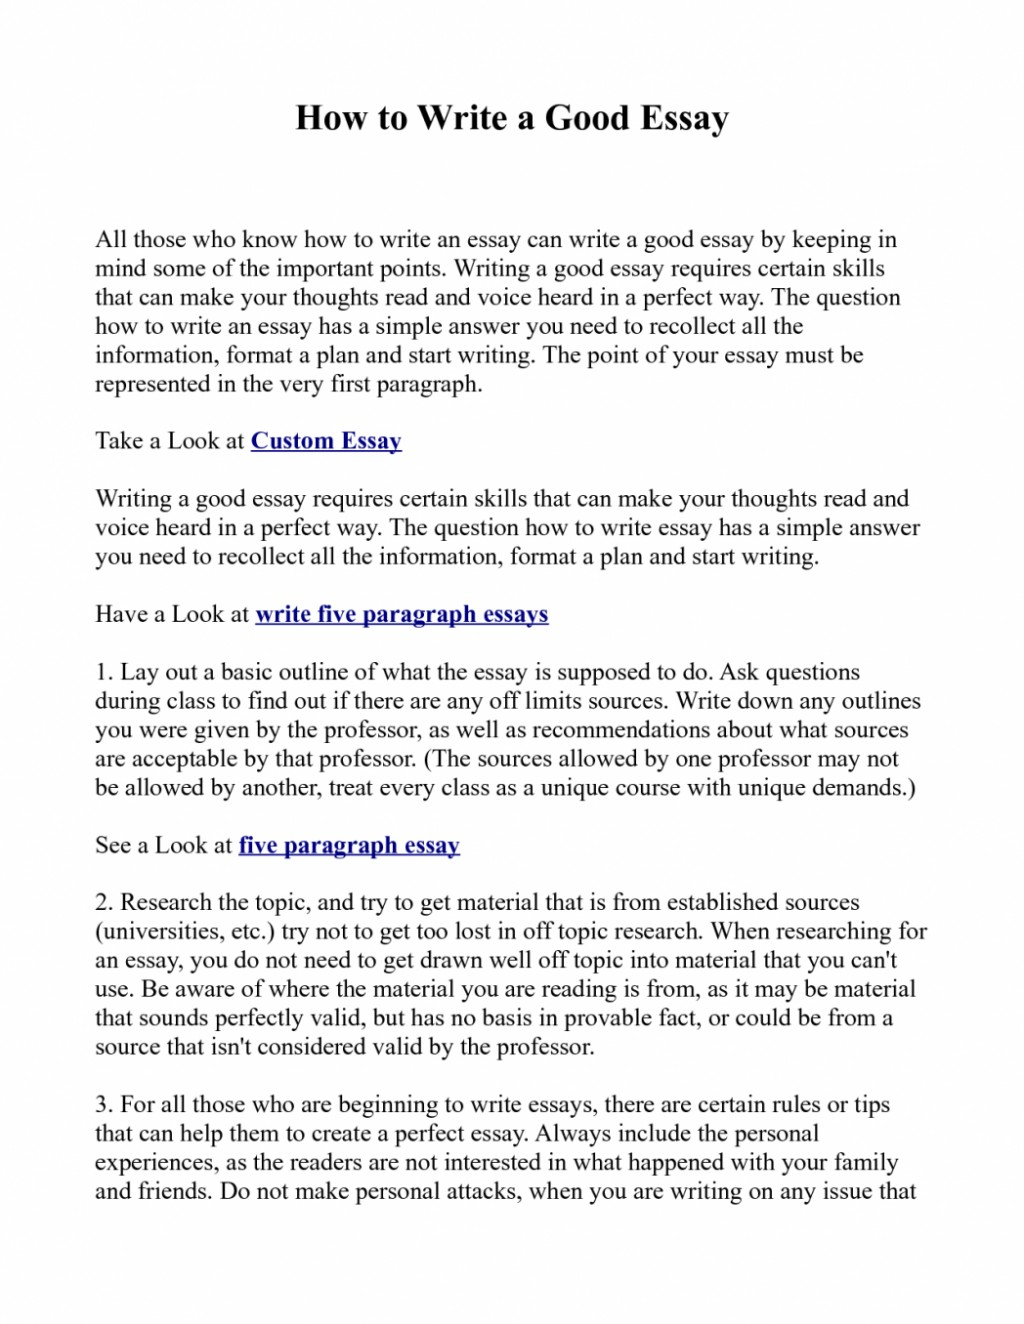 001 How To Type An Essay Of Essays Writing Write Excellent The Perfect Types Slideshare Ex1id Ppt Pdf Withs In Hindi Wikipedia Task 1048x1356 Awesome Fast A One Page Paper Apa Format Mla On Mac Large